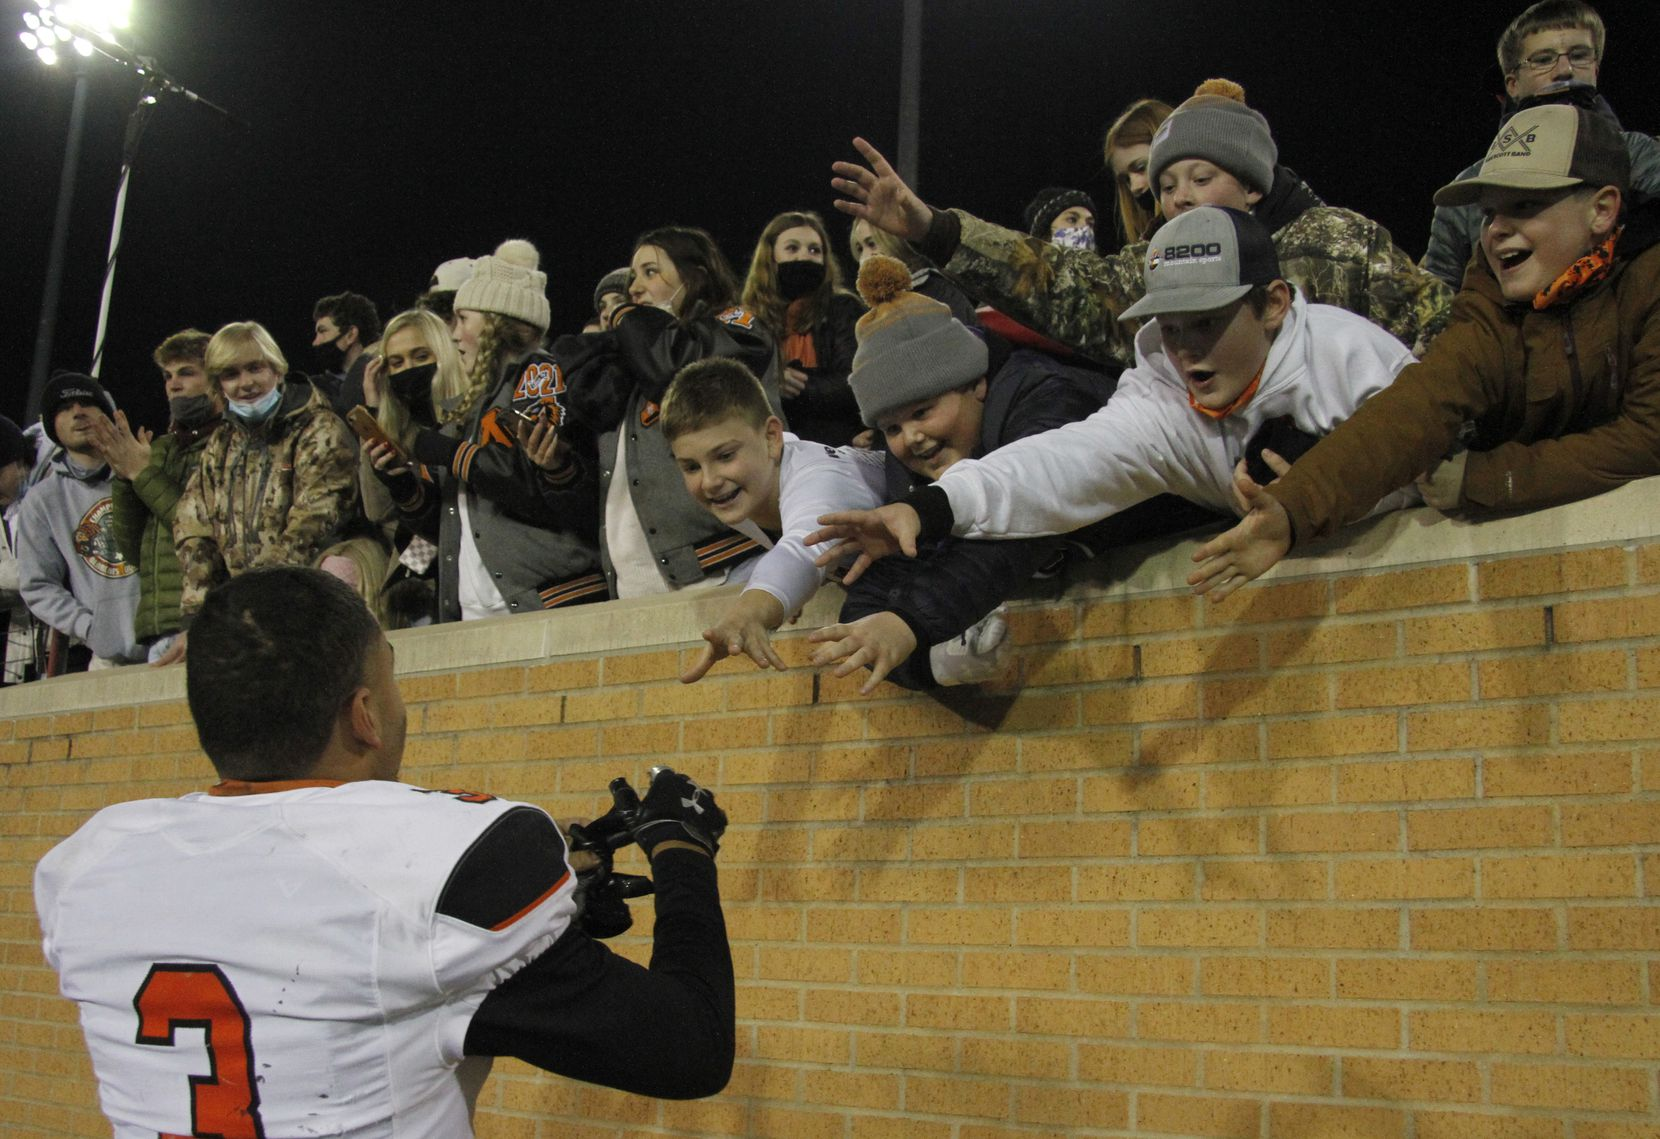 Aledo running back Jeremiah James (3) draws the attention of young Bearcats fans as they scramble for the chance to snag a game souvenir when he decides to part with his gloves following Aledo's 55-28 victory over Wichita Falls Rider to advance to the state tournament. The two teams played their Class 5A Division ll state semifinal football playoff game at Apogee Stadium in Denton on January 8, 2021. (Steve Hamm/ Special Contributor)